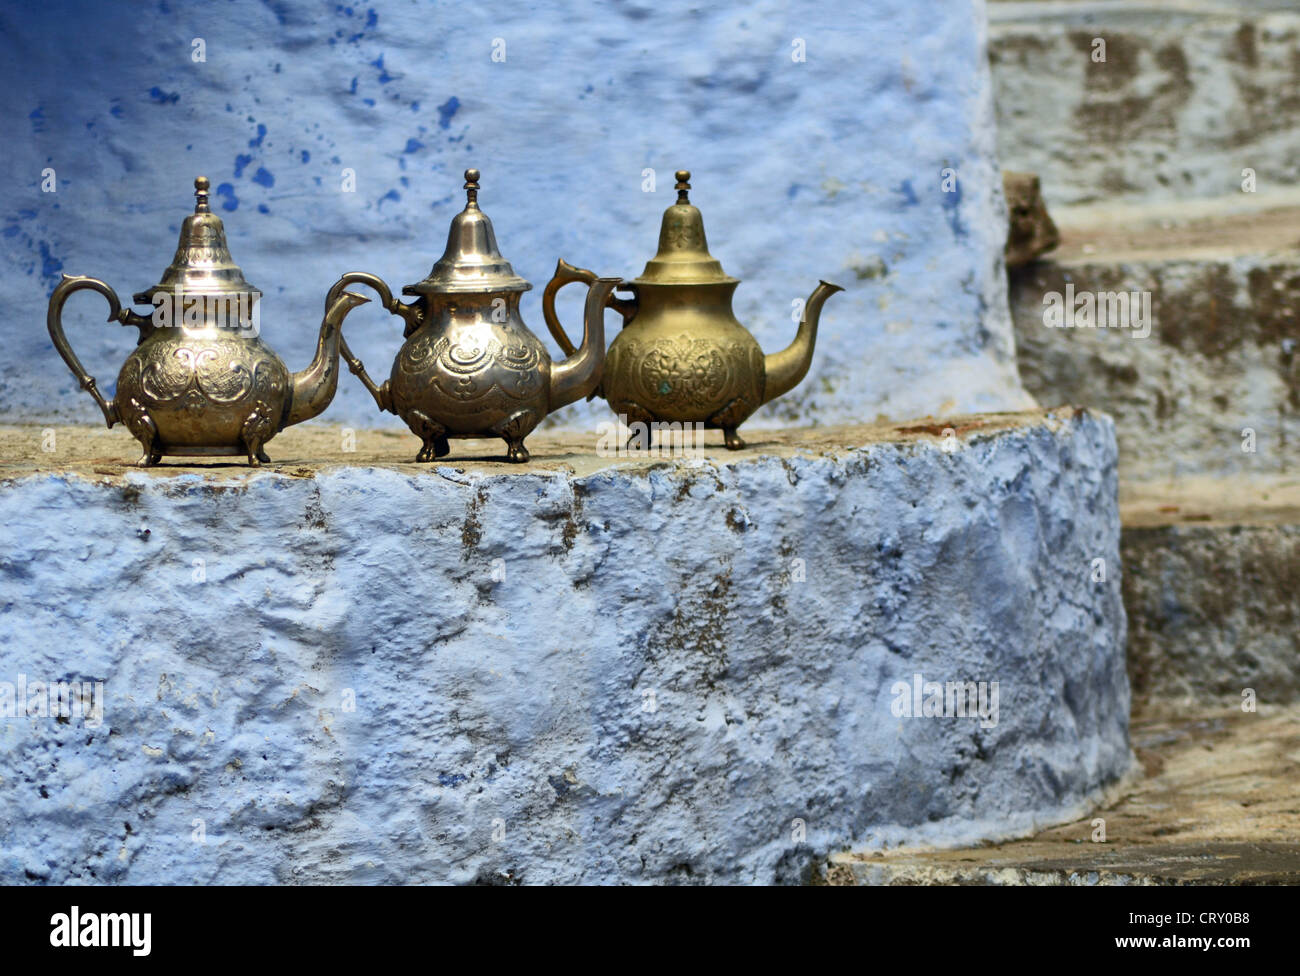 Moroccan teapots in Chefchaouen, Morocco - Stock Image